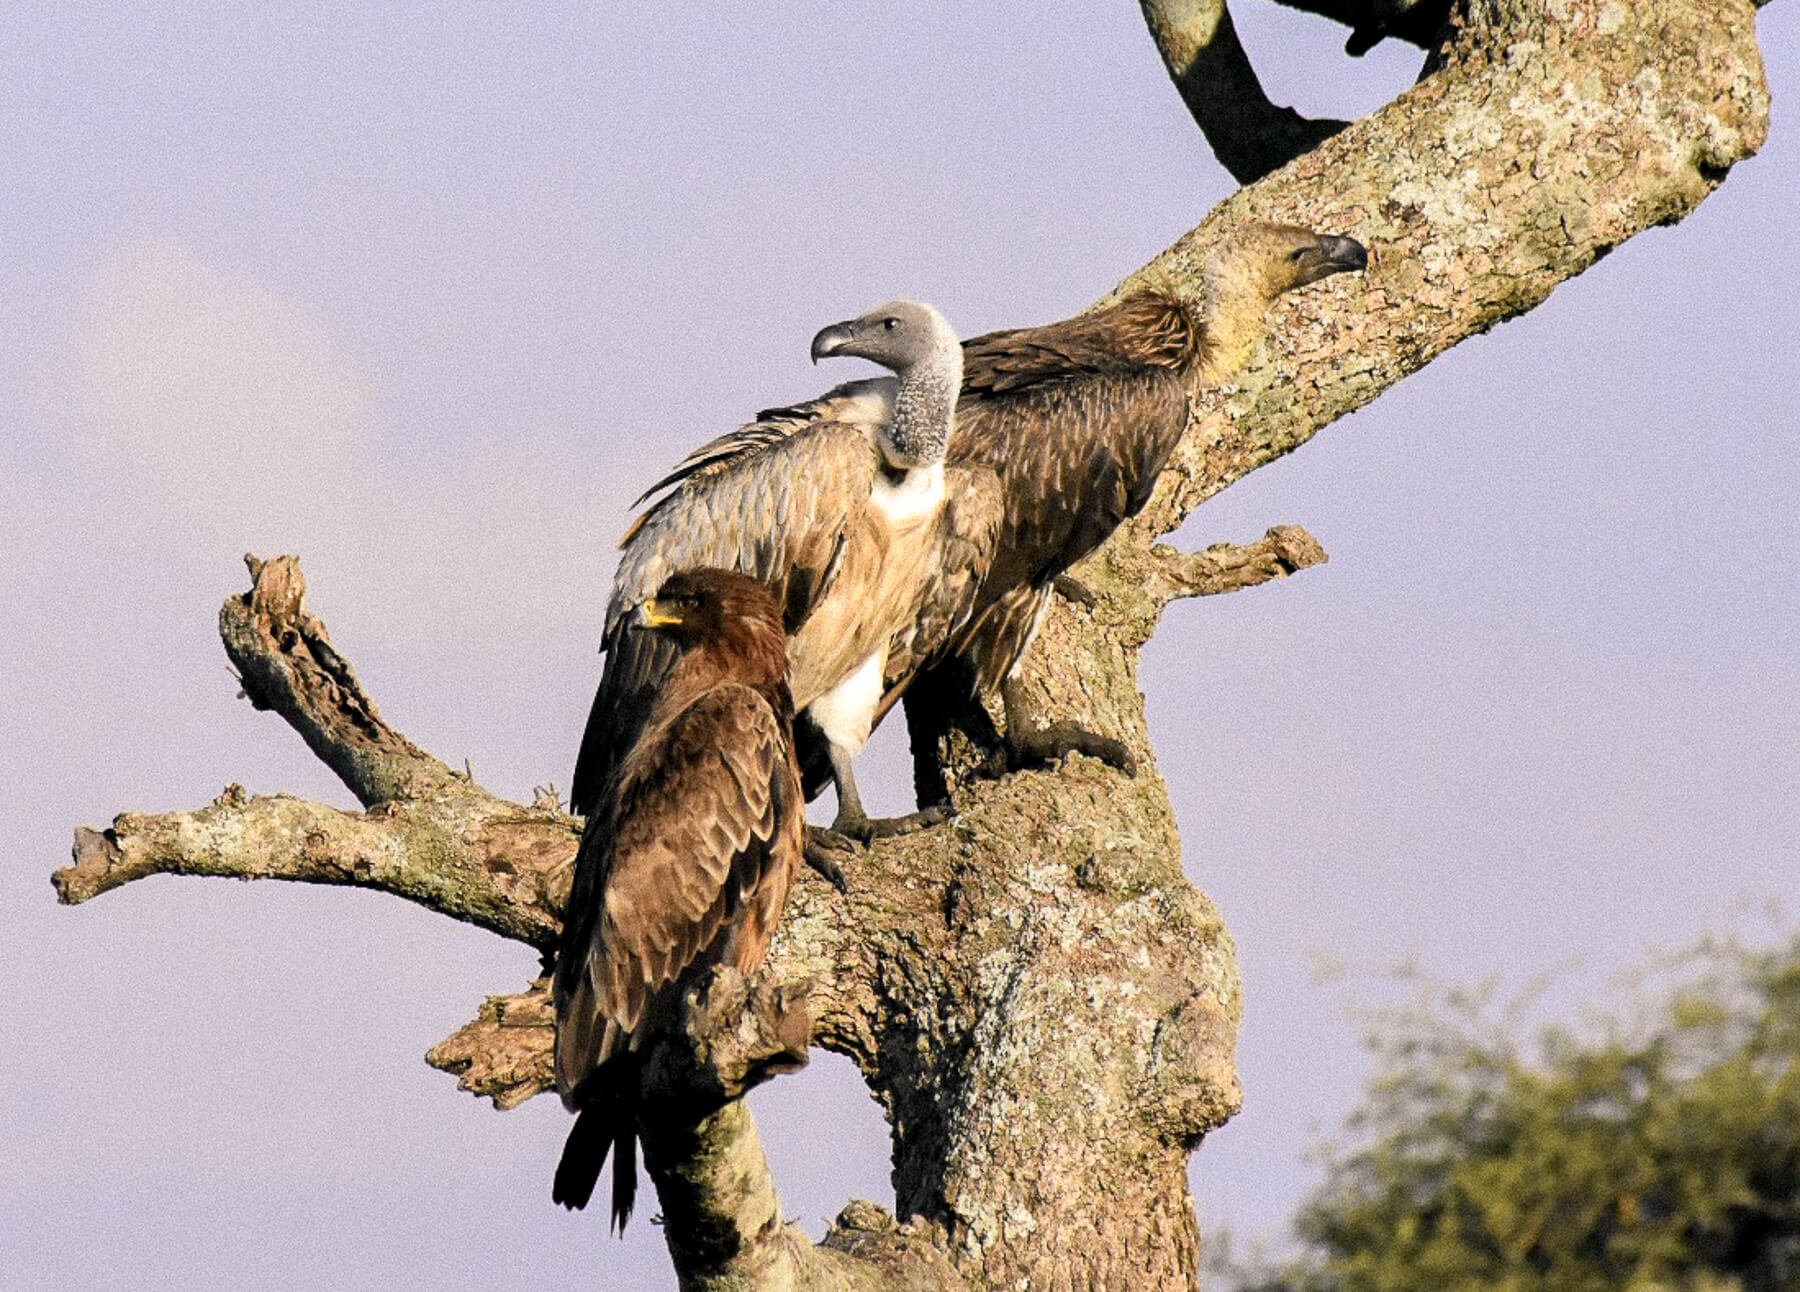 2 vultures and an eagle perched on a bare tree trunk